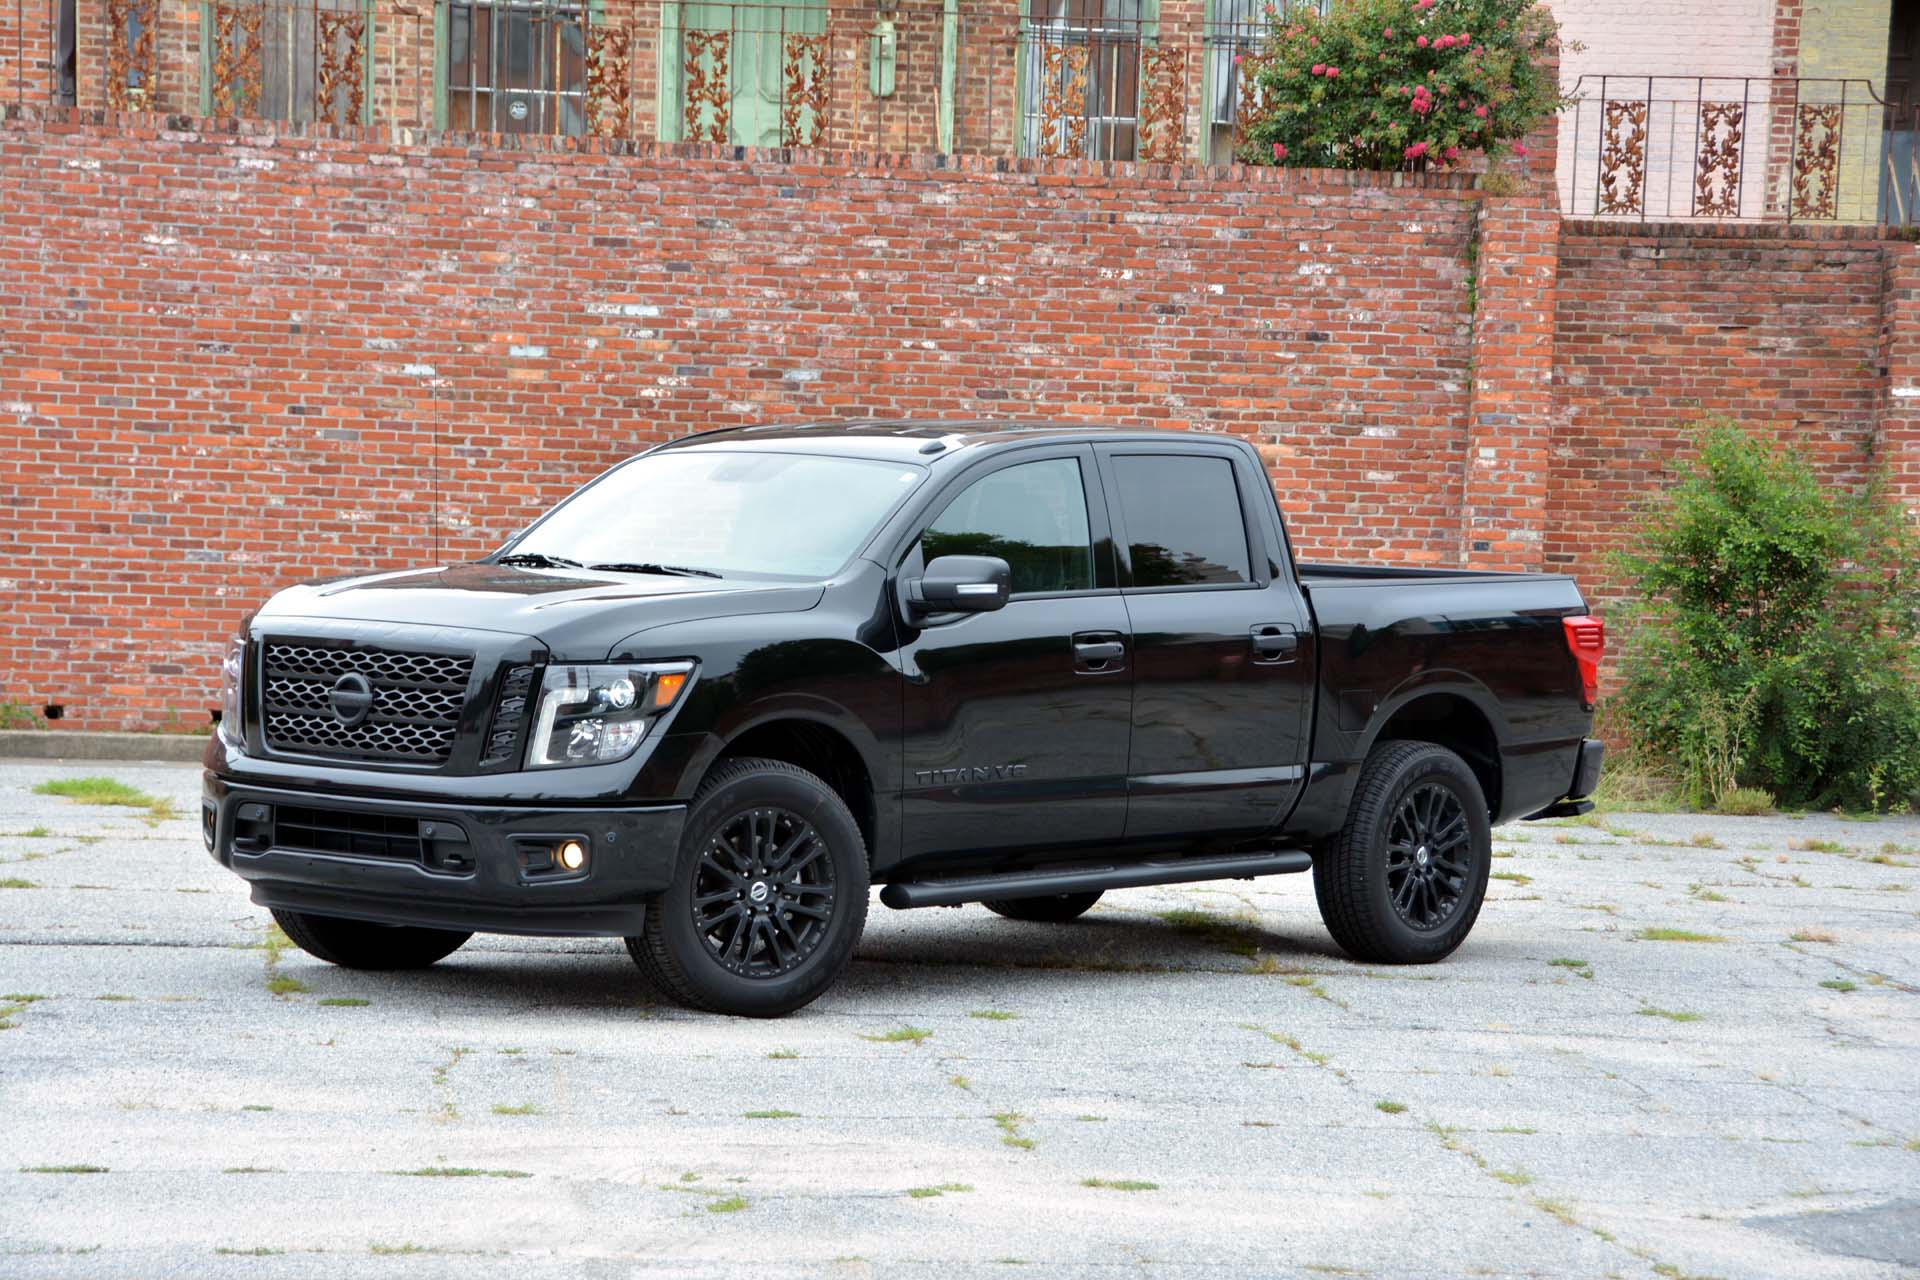 Image of a 2018 Nissan Titan Midnight Edition vehicle